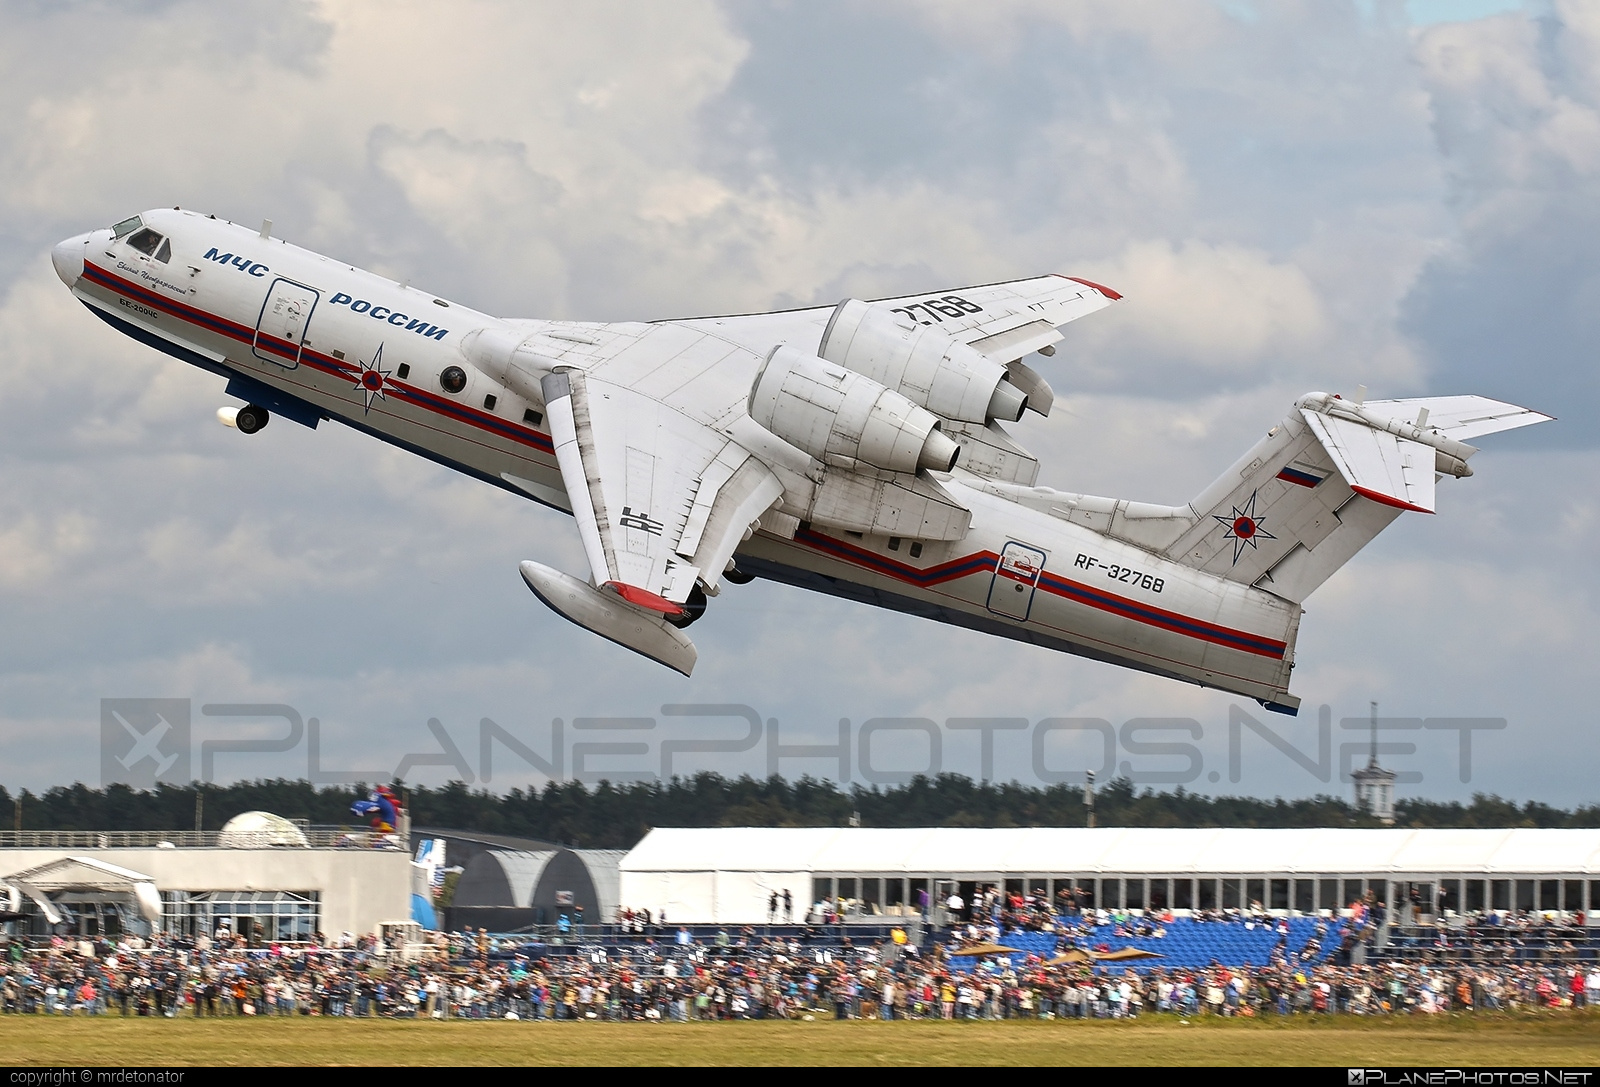 Beriev Be-200ChS - RF-32768 operated by Russia - Ministry for Emergency Situations (MChS) #be200 #be200chs #be200es #beriev #beriev200 #beriev200chs #beriev200es #berievbe200 #berievbe200chs #berievbe200es